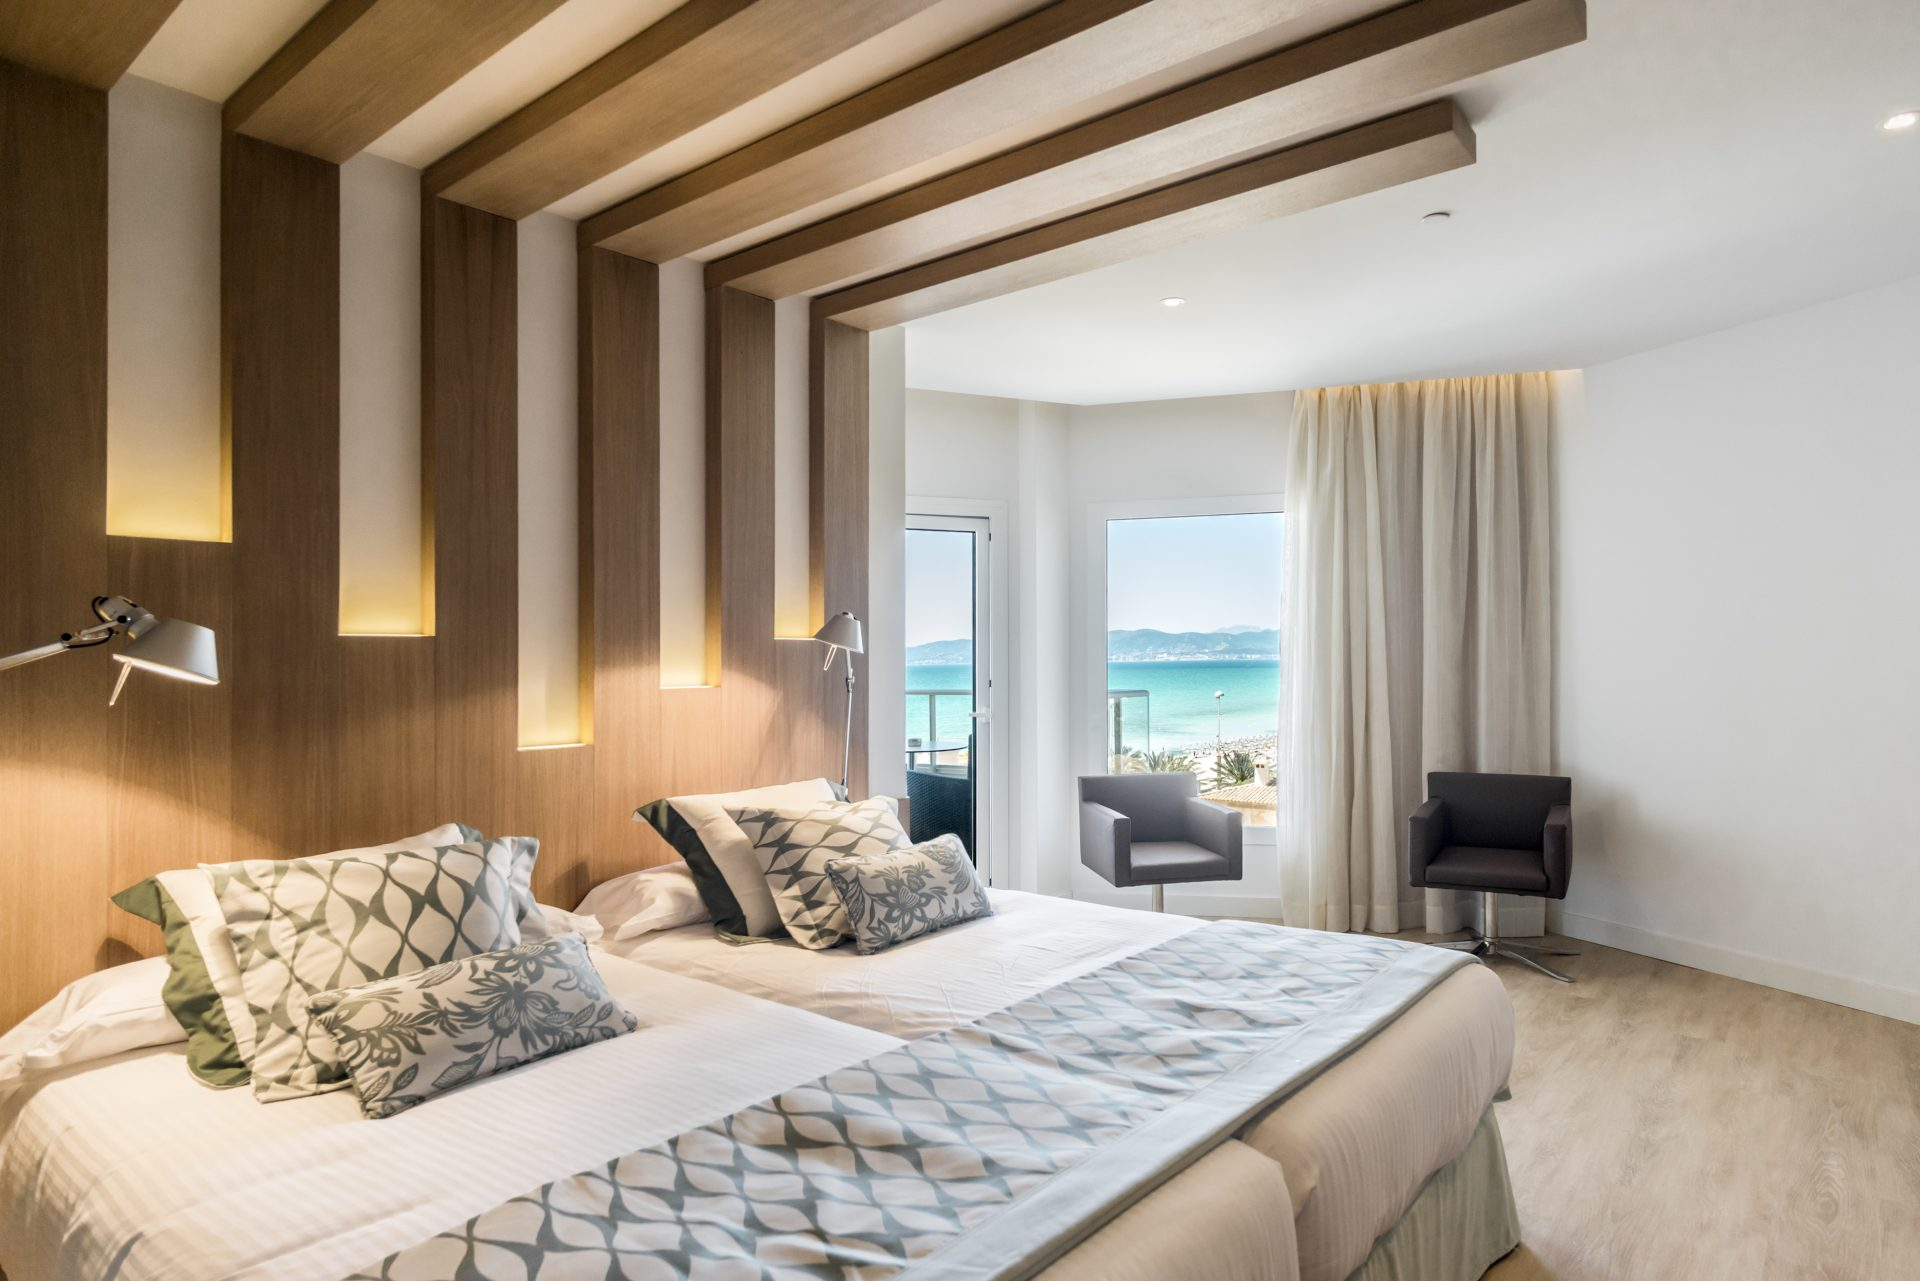 Pure Salt - Luxury Hotels - Deluxe Bedroom - Playa de Palma - Mallorca